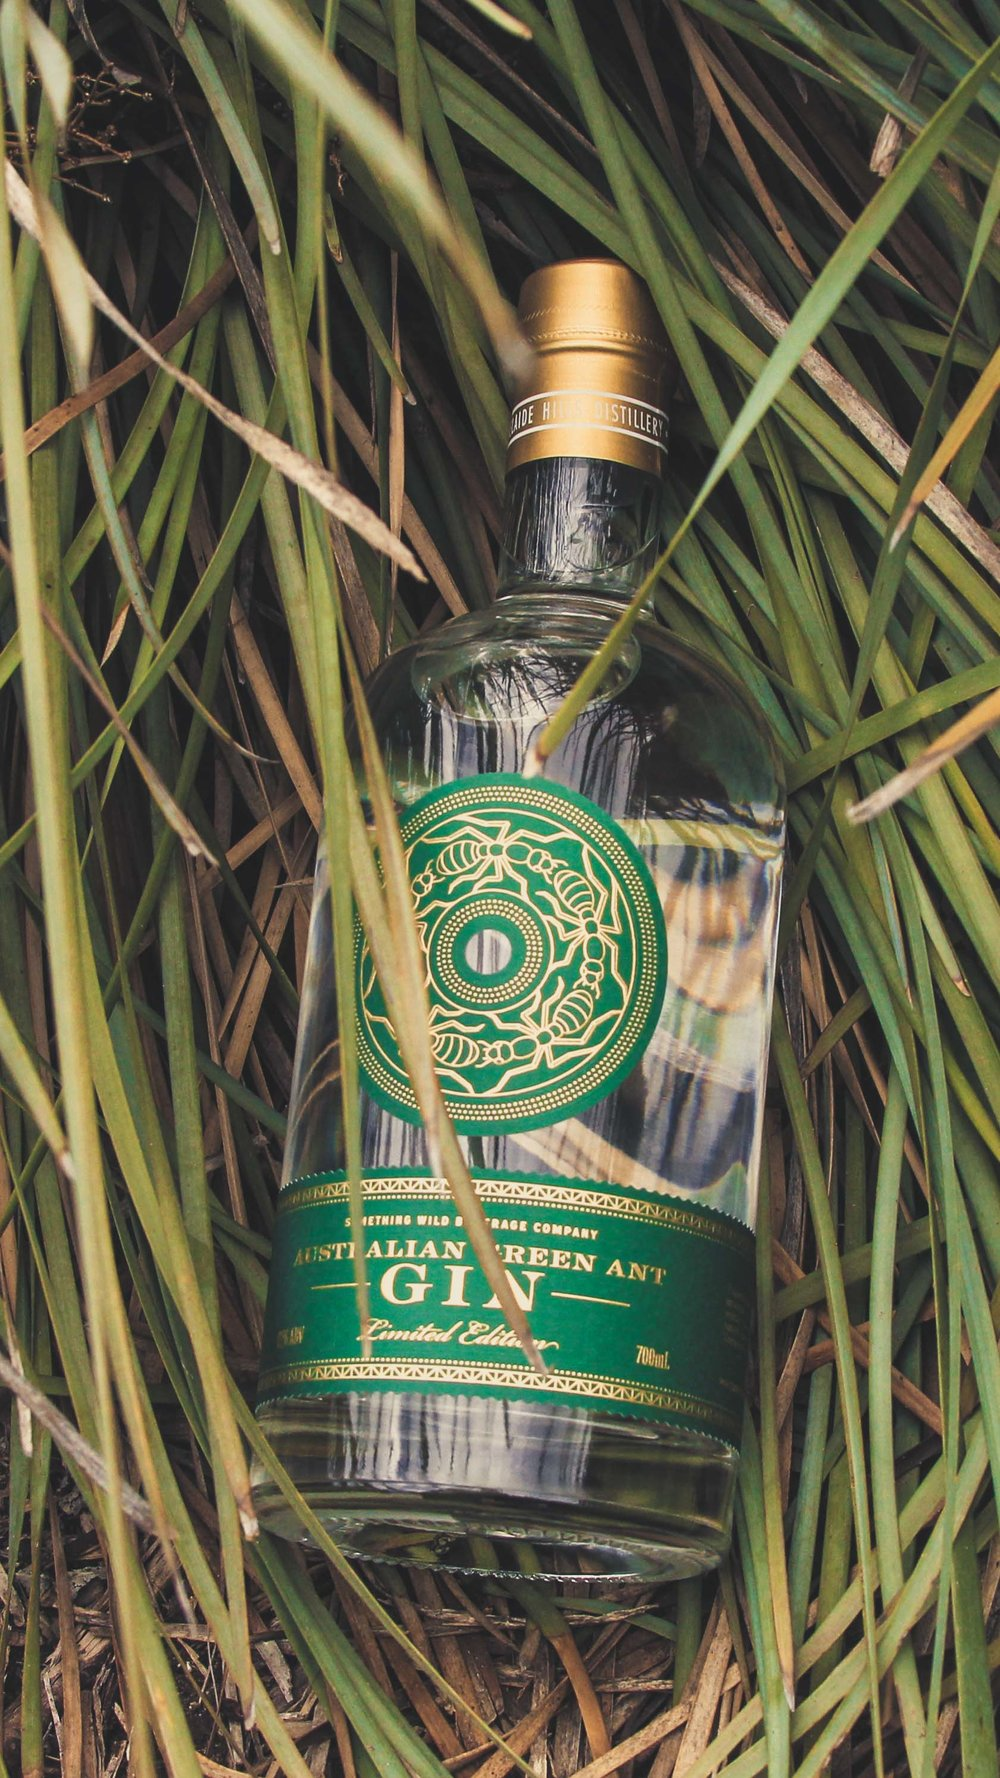 Green Ant Gin from Adelaide Hills Distillery